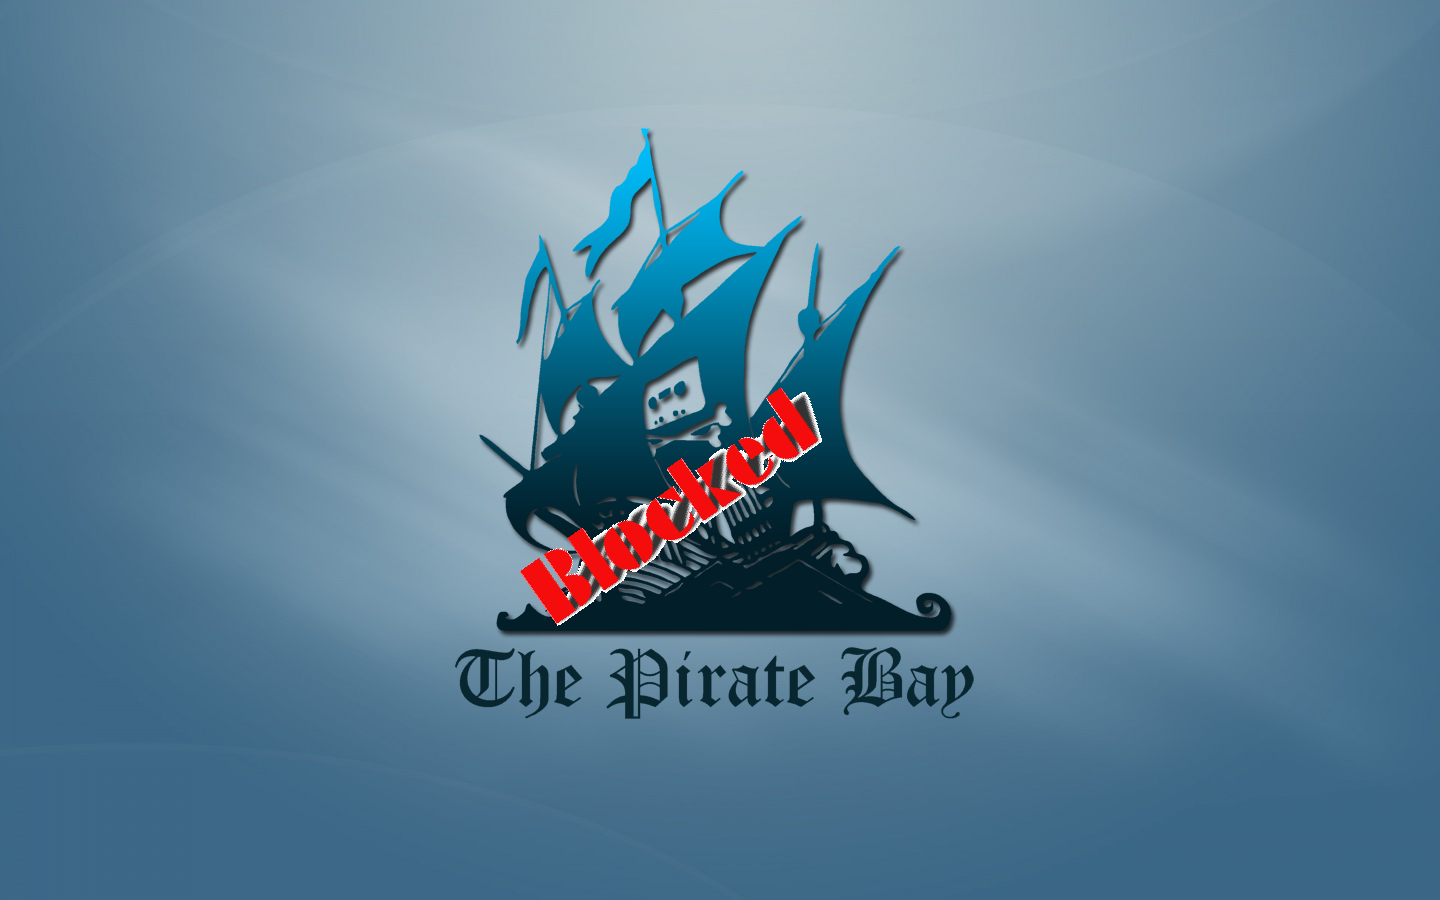 Pirate bay anime movies